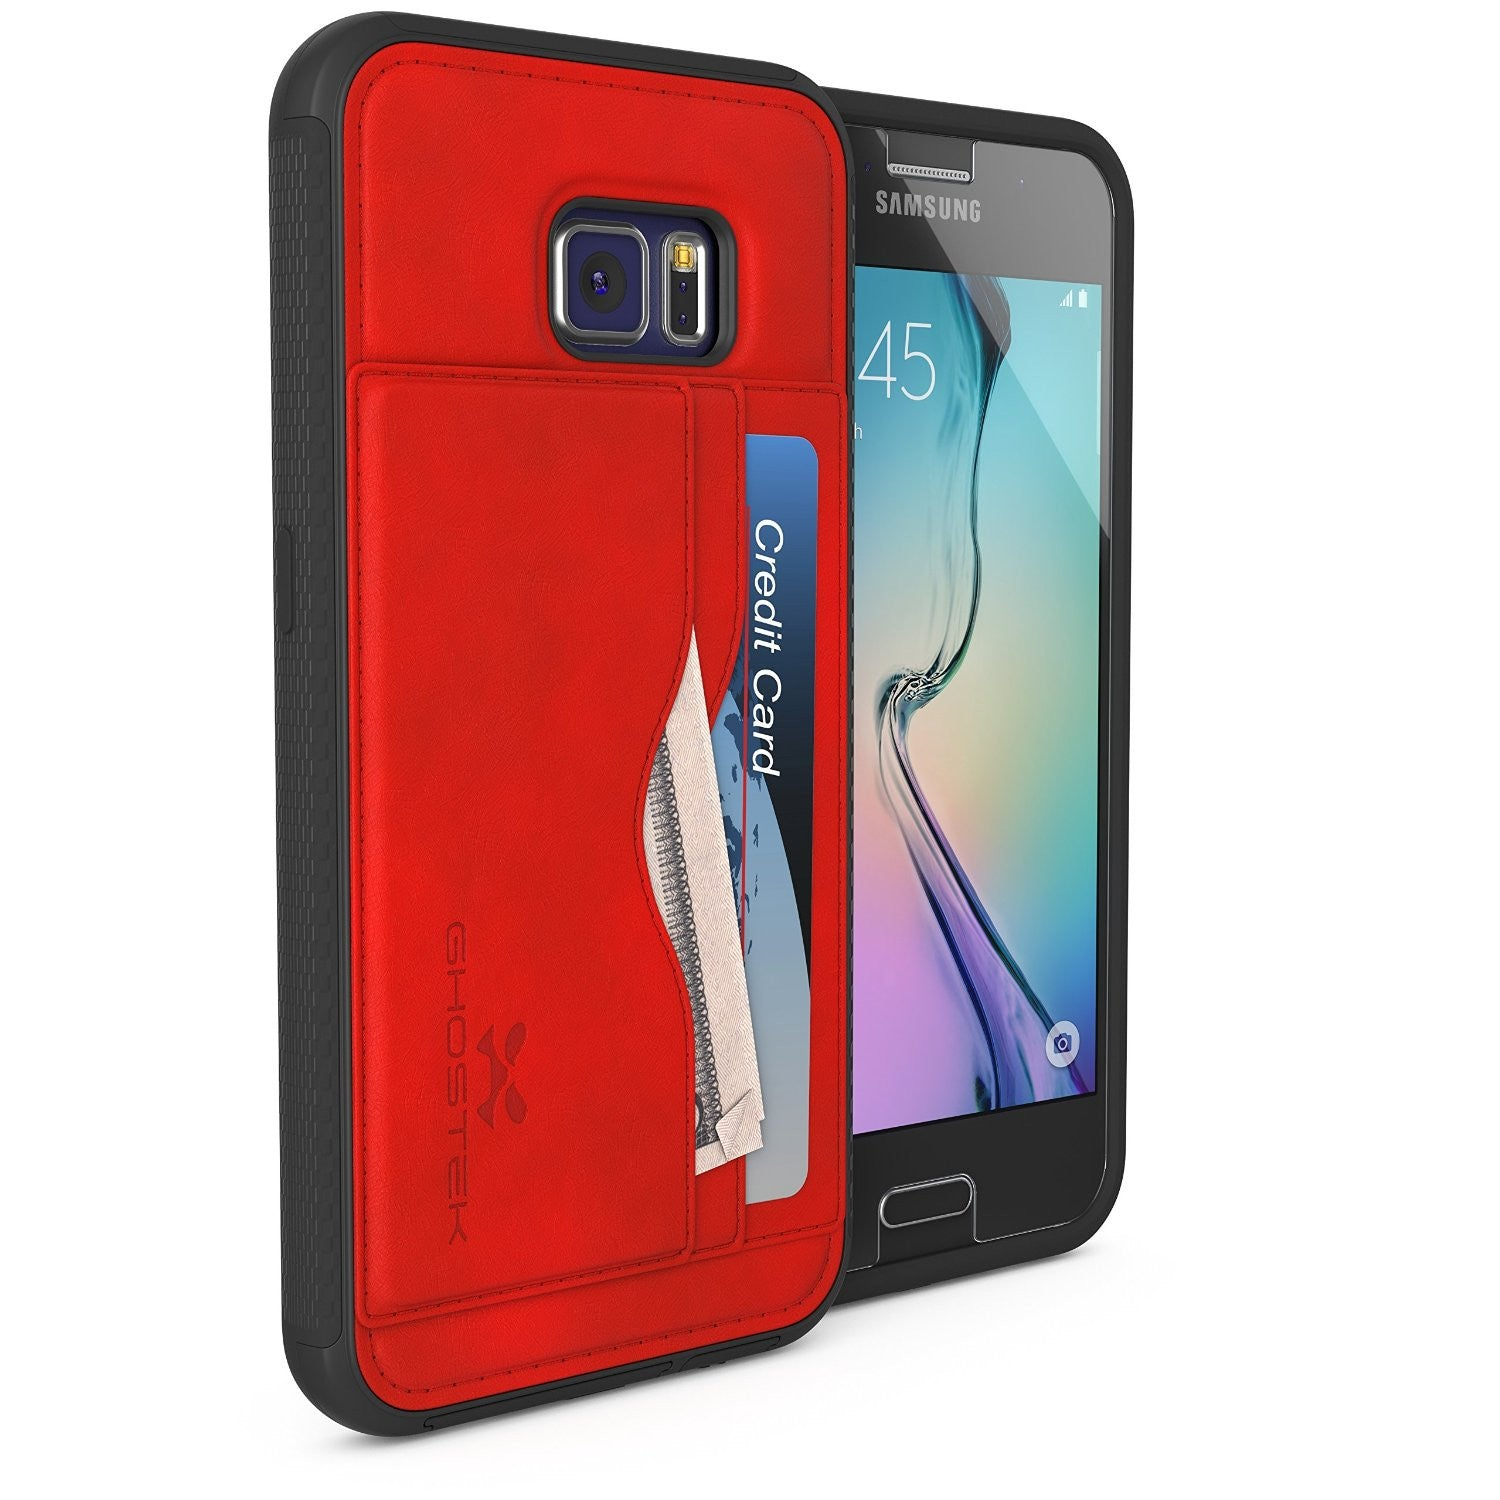 Galaxy S6 Wallet Case, Ghostek Stash Red Wallet Case w/ Tempered Glass | Lifetime Warranty